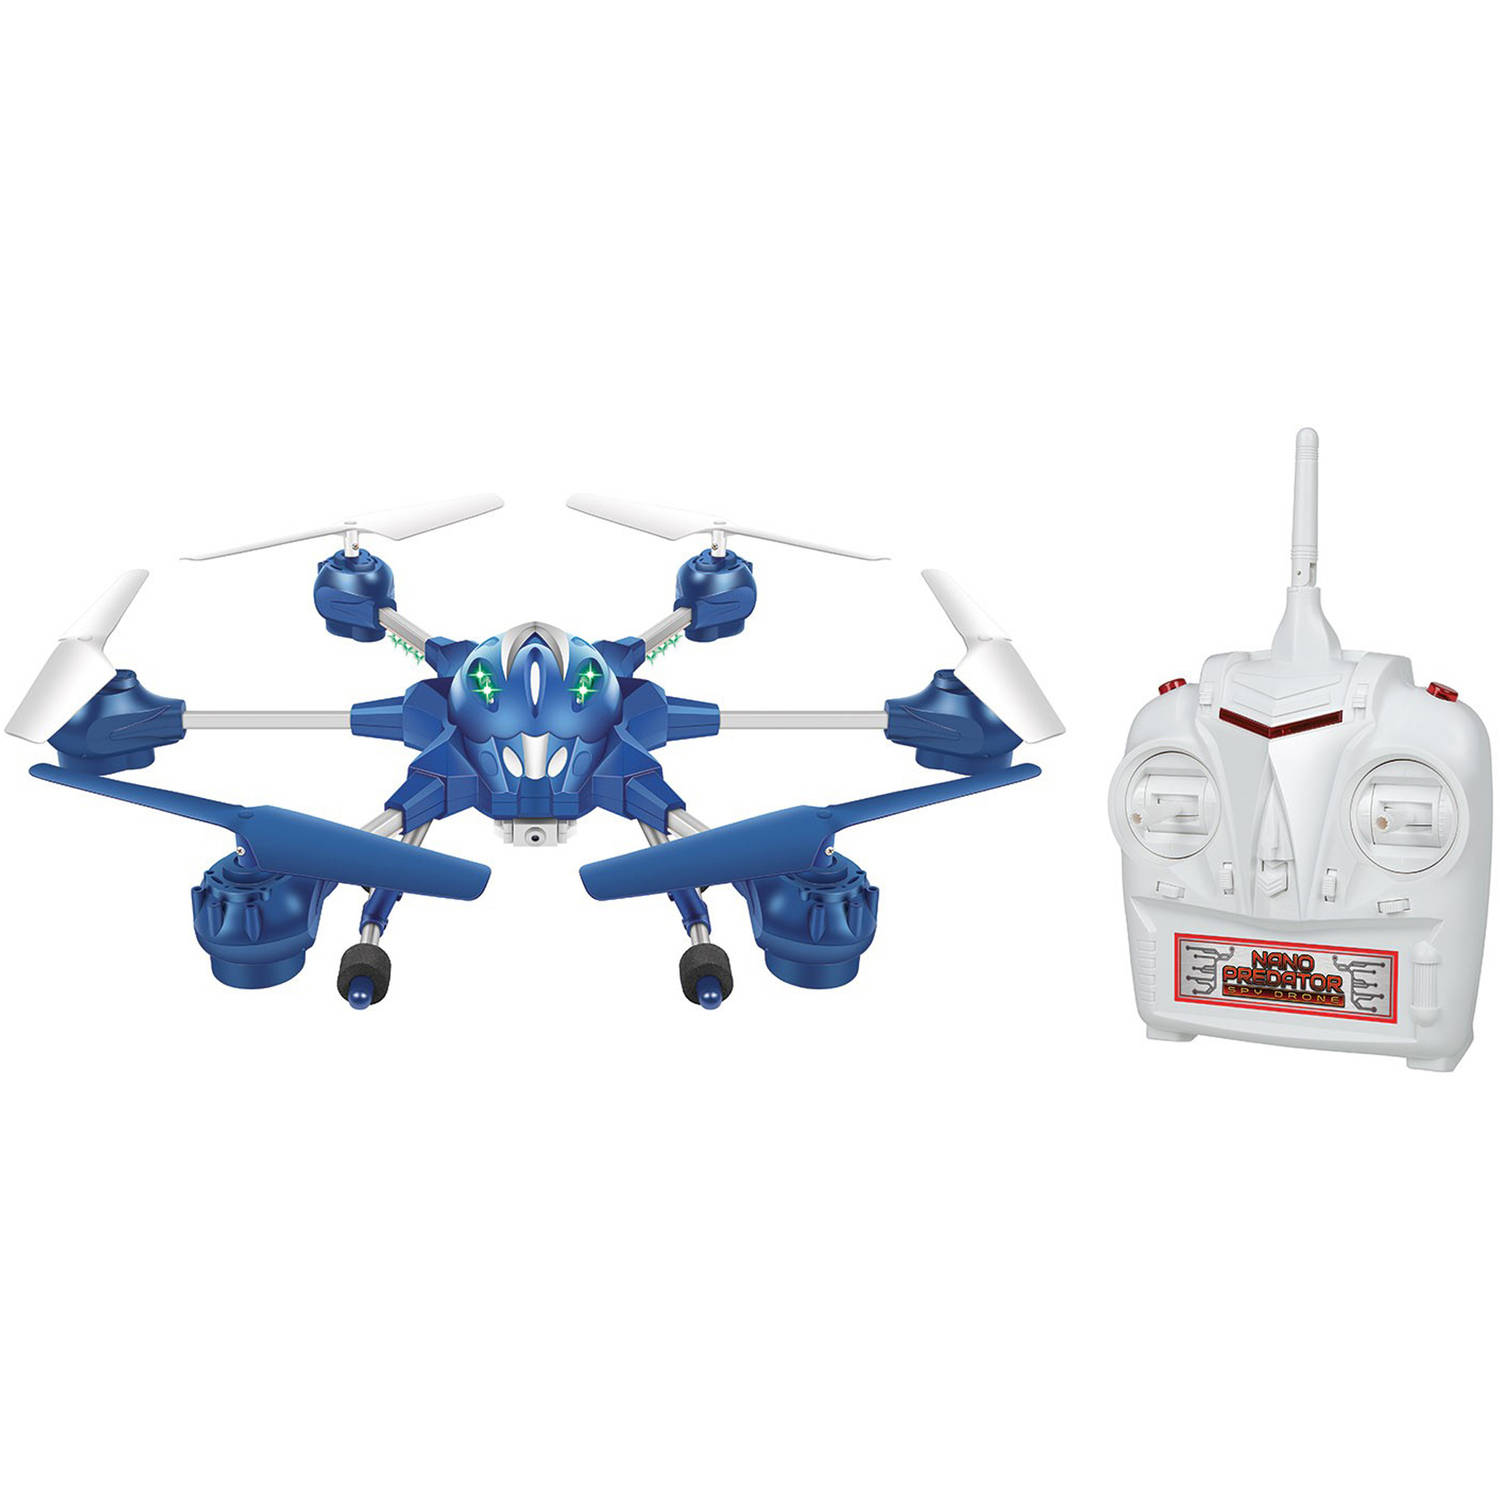 2.4Ghz 4.5-Channel Nano Alpha Spy Drone Picture and Video Remote Control Quadcopter by World Tech Toys